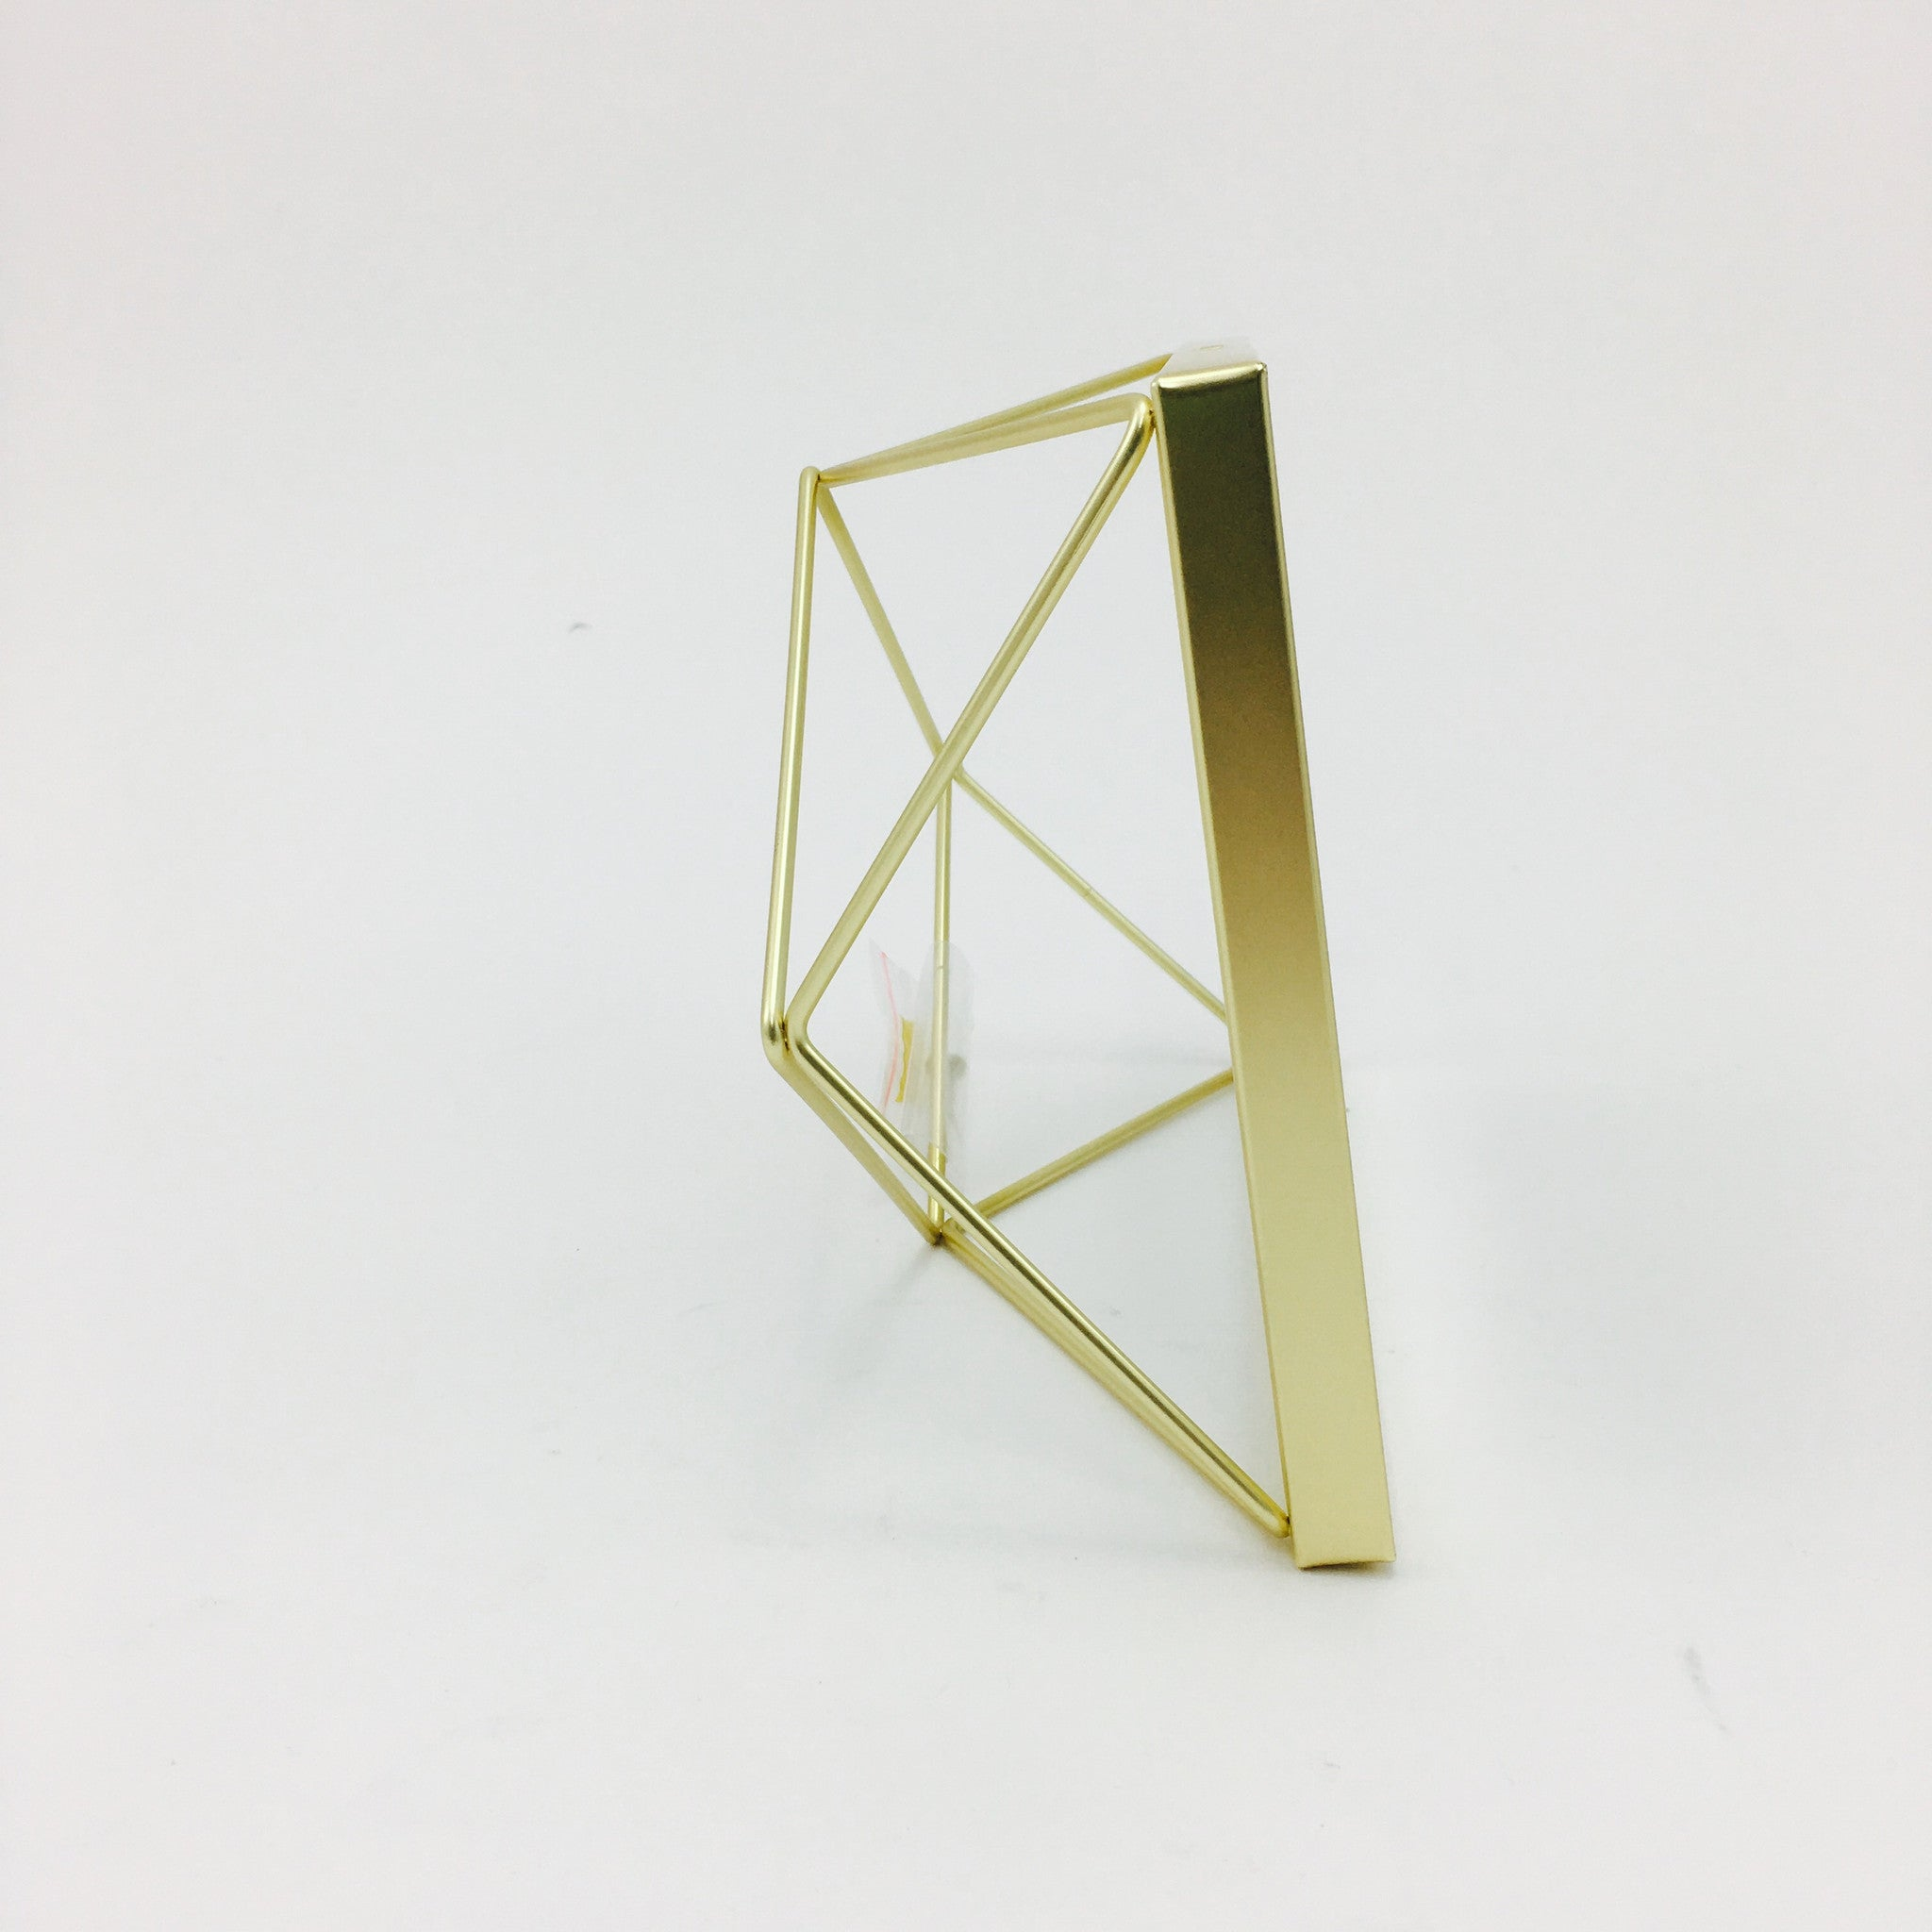 """Prisma"" Picture Frames in Matte Brass by Umbra - 4 x 4 inches by Umbra - K. A. Artist Shop"